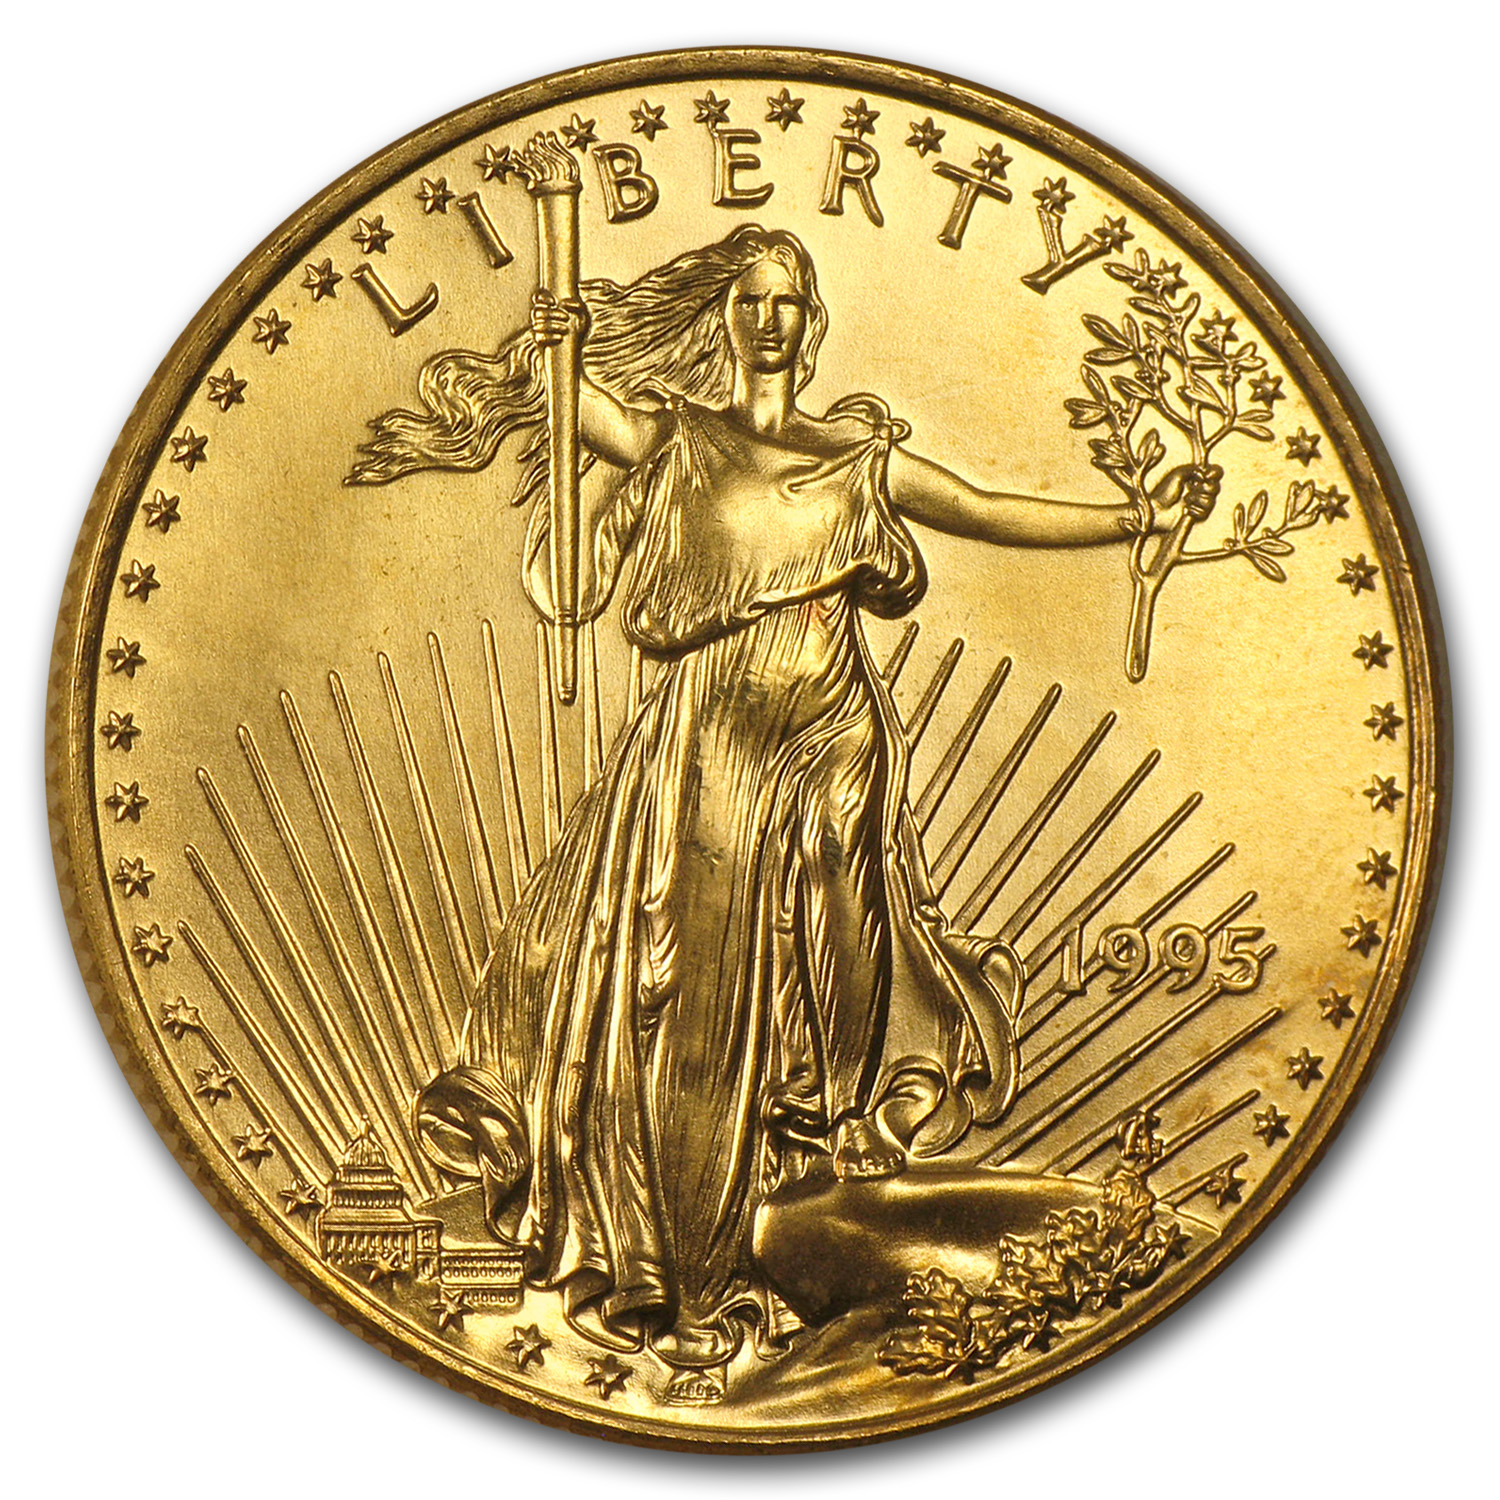 1995 1/2 oz Gold American Eagle (BU)